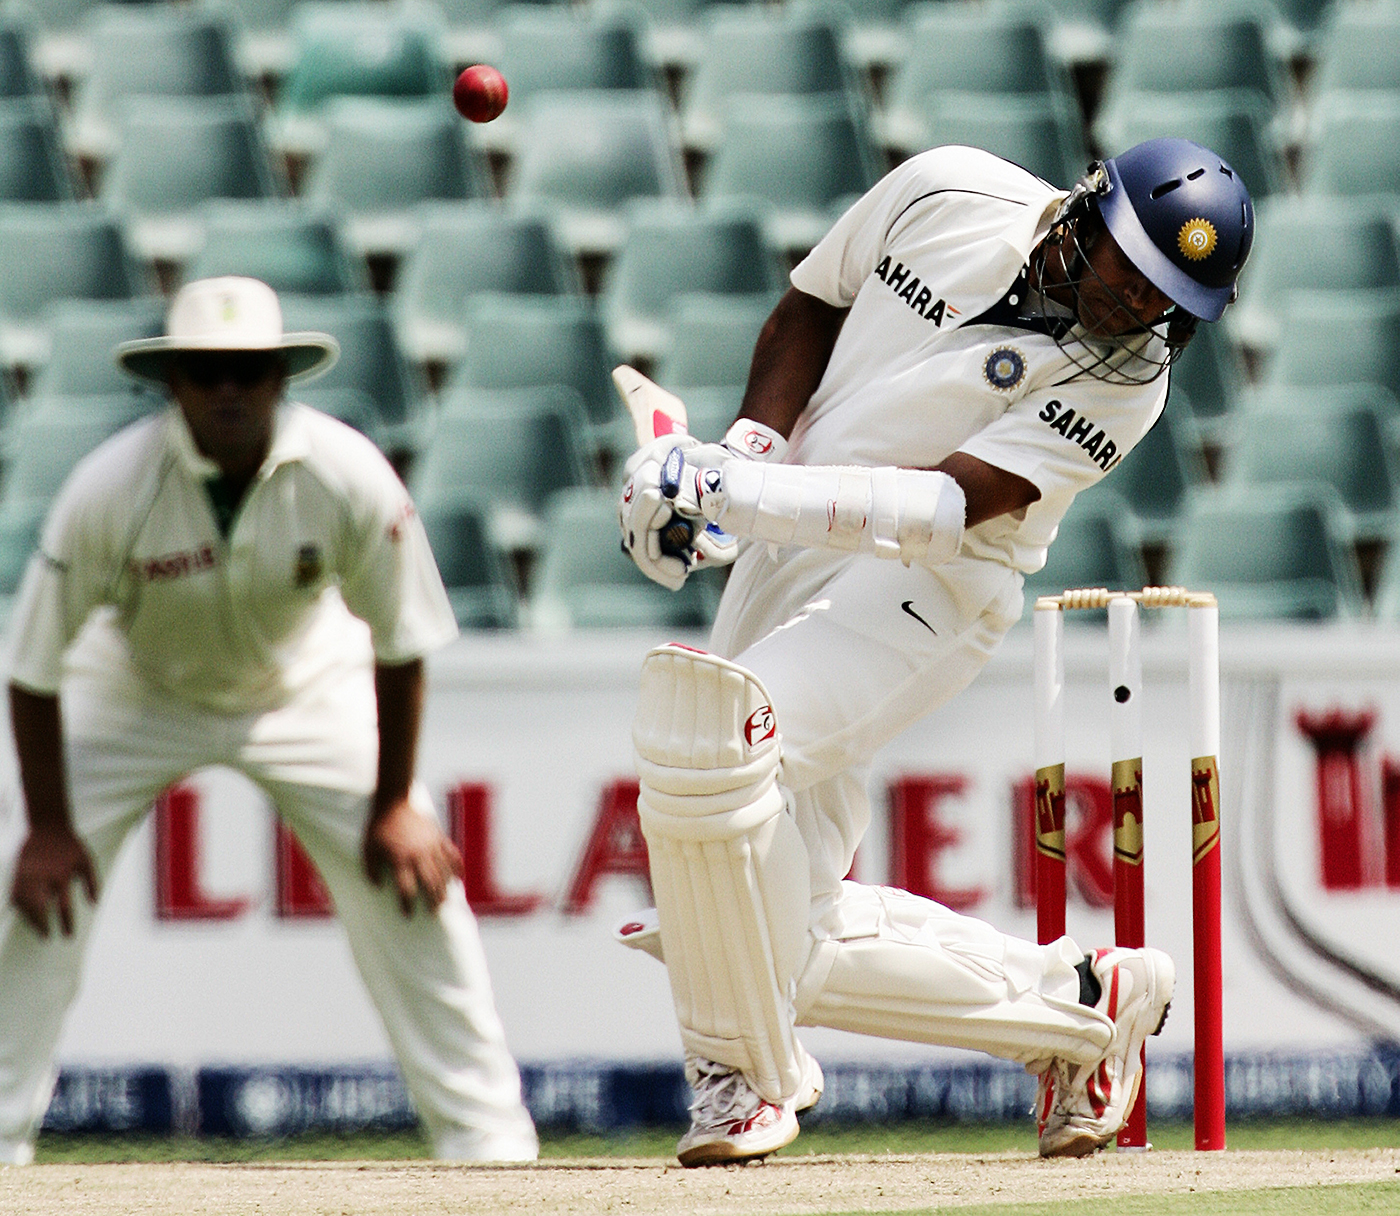 In a low-scoring Test, doughty contributions, like Rahul Dravid 32, made a big difference